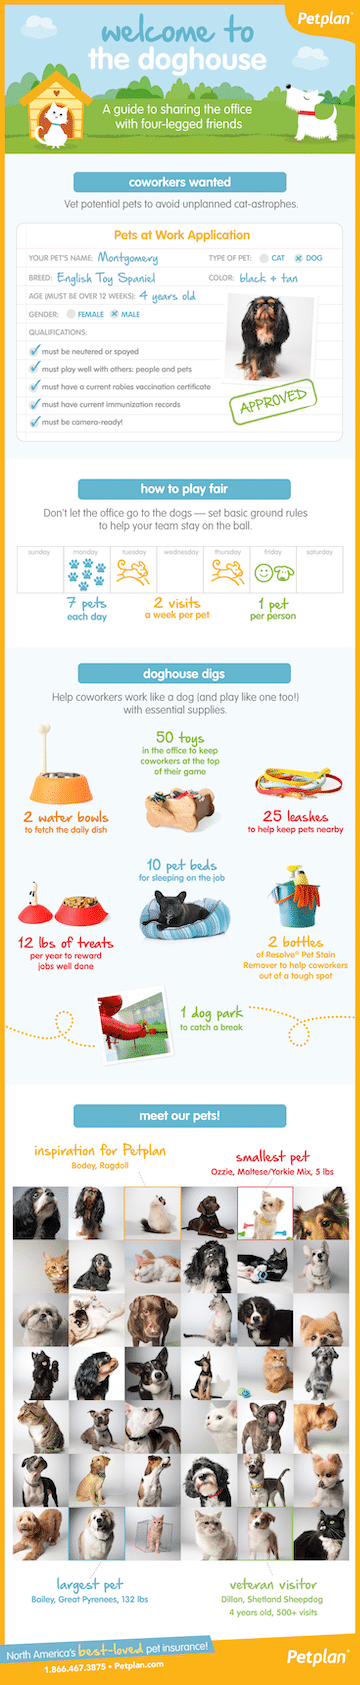 Taking pet to work infographic